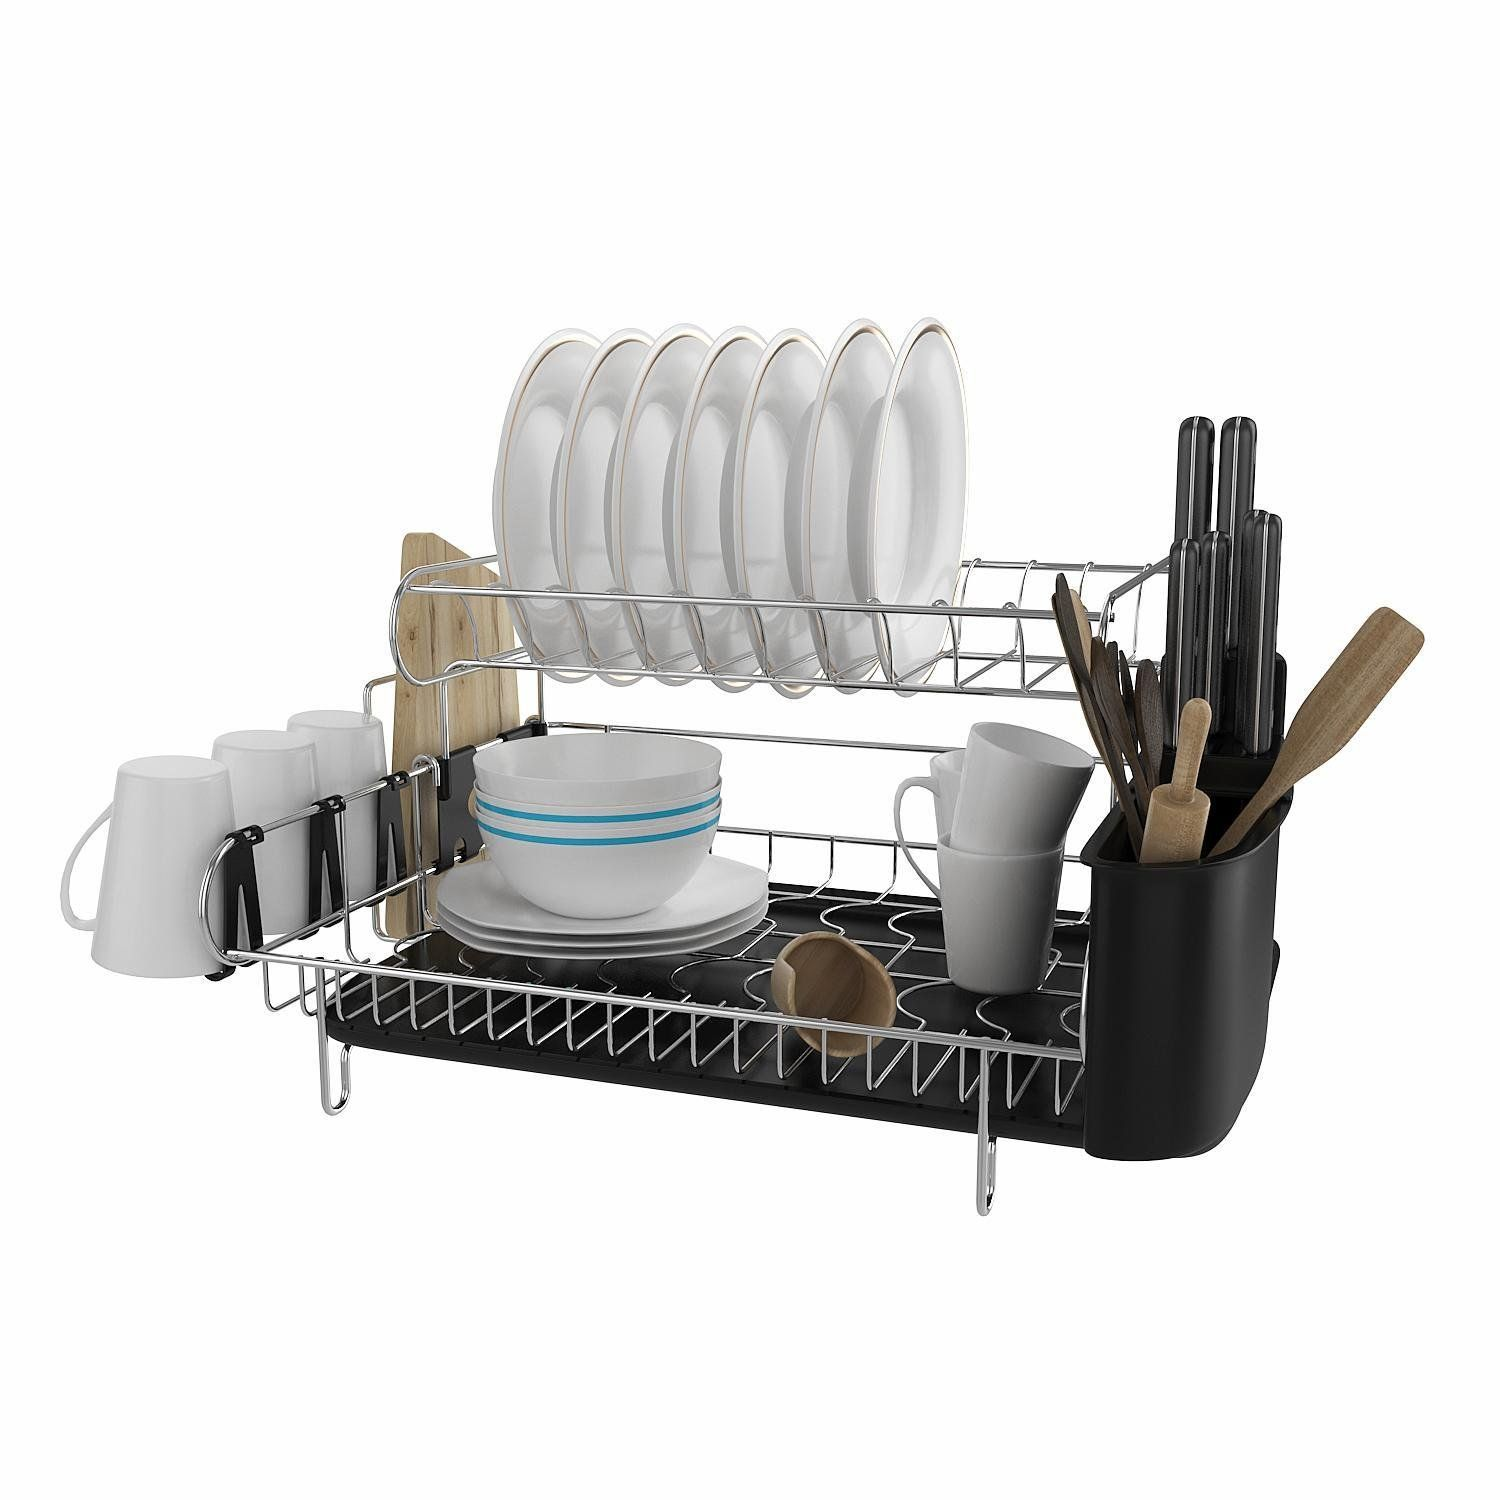 304 Stainless Steel Professional 2 Tier Dish Drying Drainer Rack Large Capacity With Microfiber Dish Racks Drying Rack Kitchen Kitchen Utensil Holder